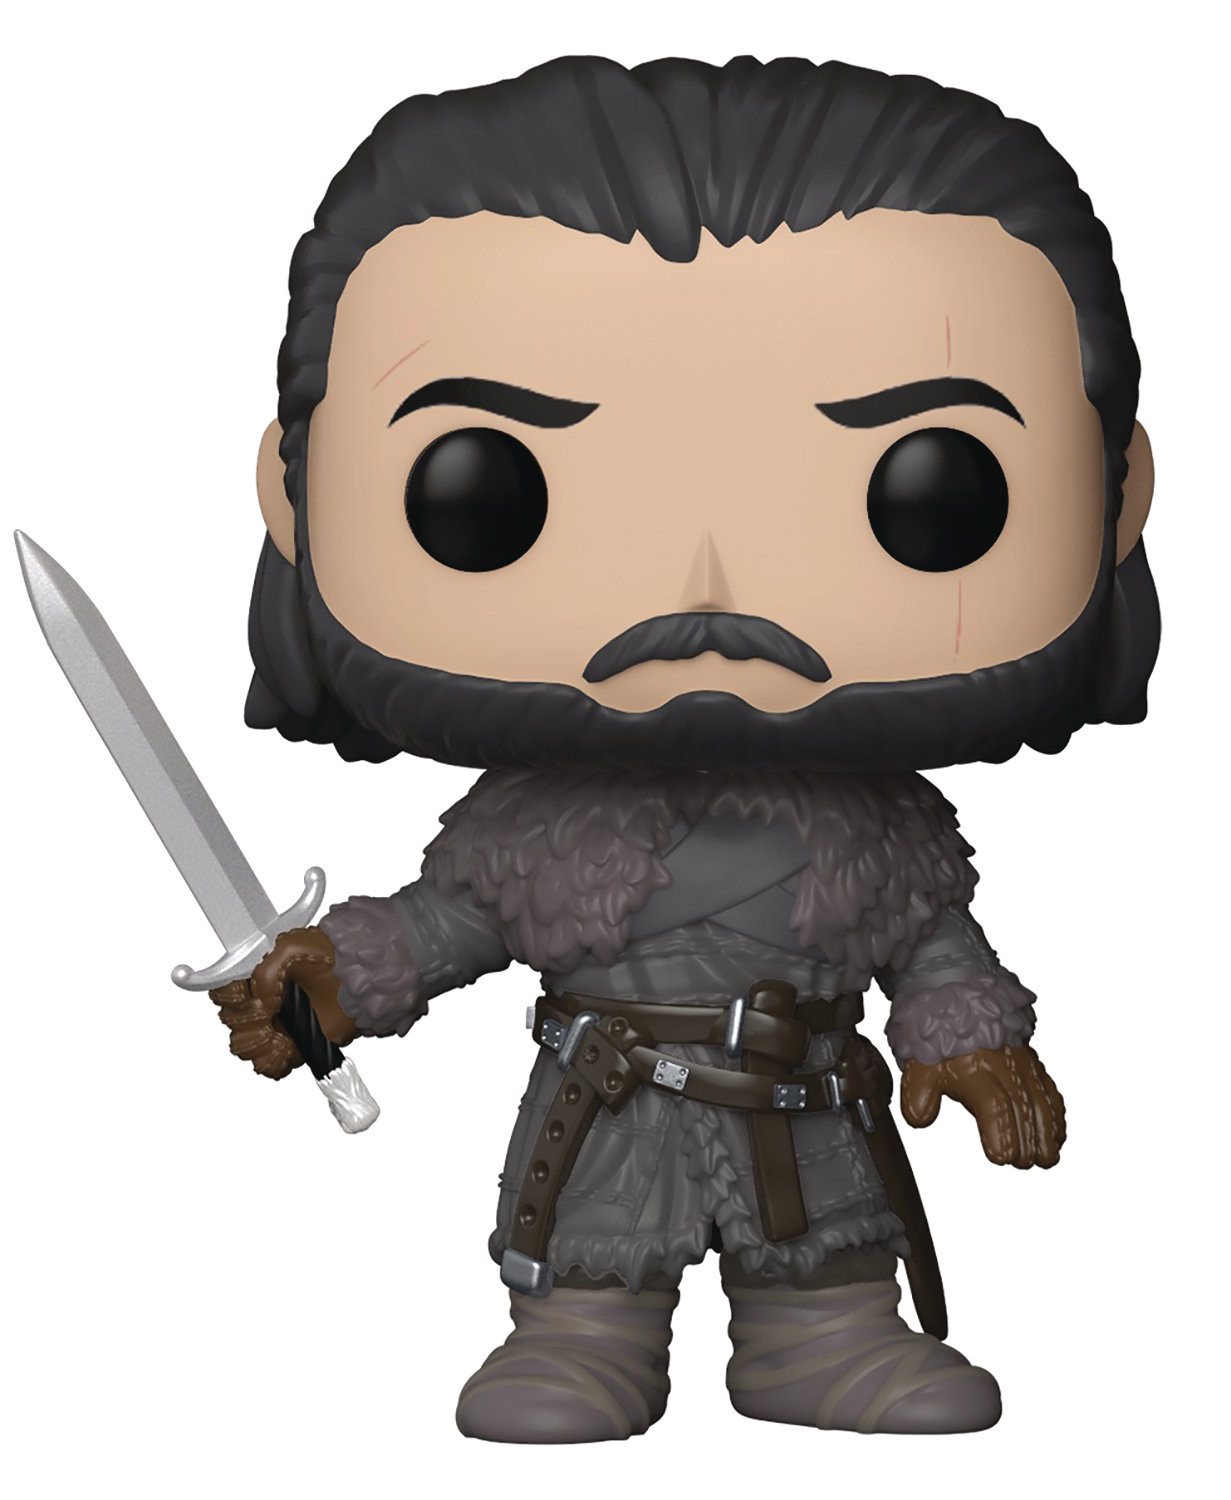 POP GOT S8 JON SNOW BEYOND THE WALL VINYL FIGURE